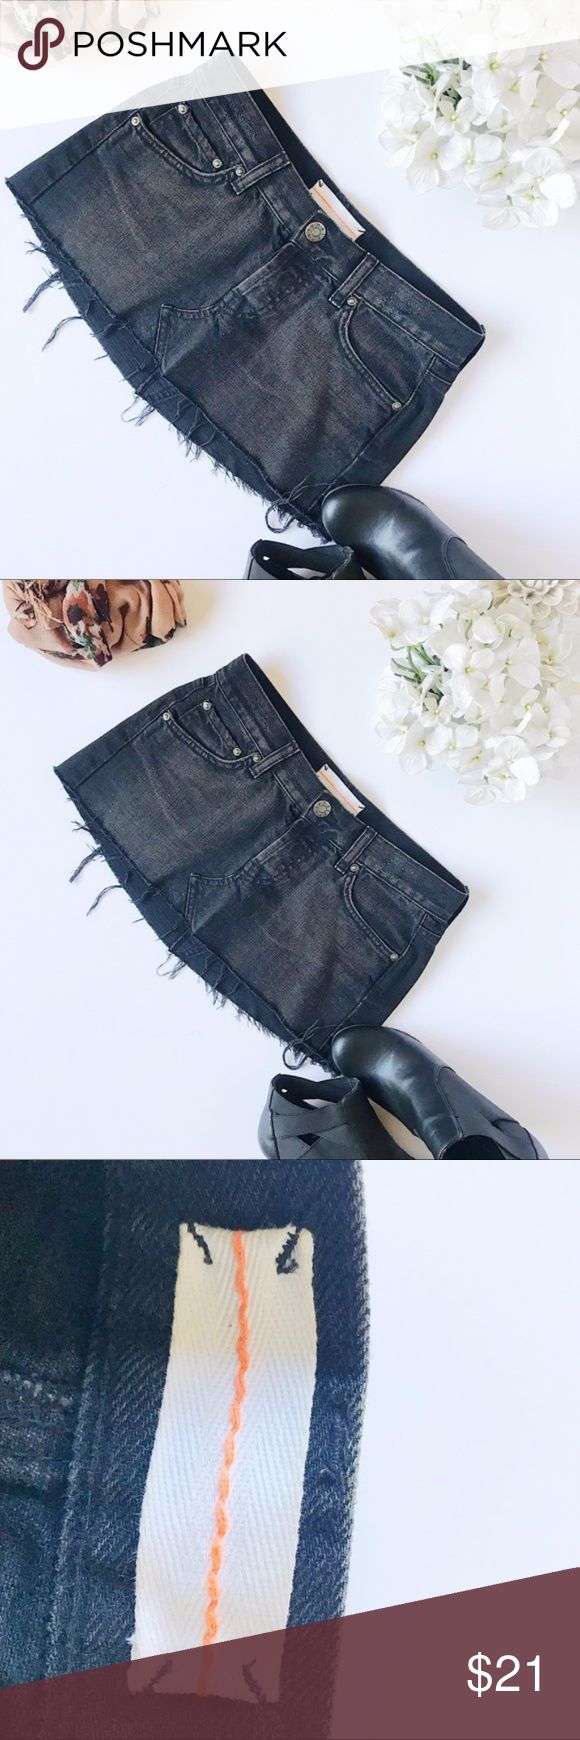 Top Shop MOTO Black Jean Mini Skirt Top Shop MOTO Black Jean Mini Skirt Such a cute jean skirt to add to a really cute pair of leggings. This is a distressed look. With almost a brown distressed wash in the front.*69 –79 Topshop Skirts Mini